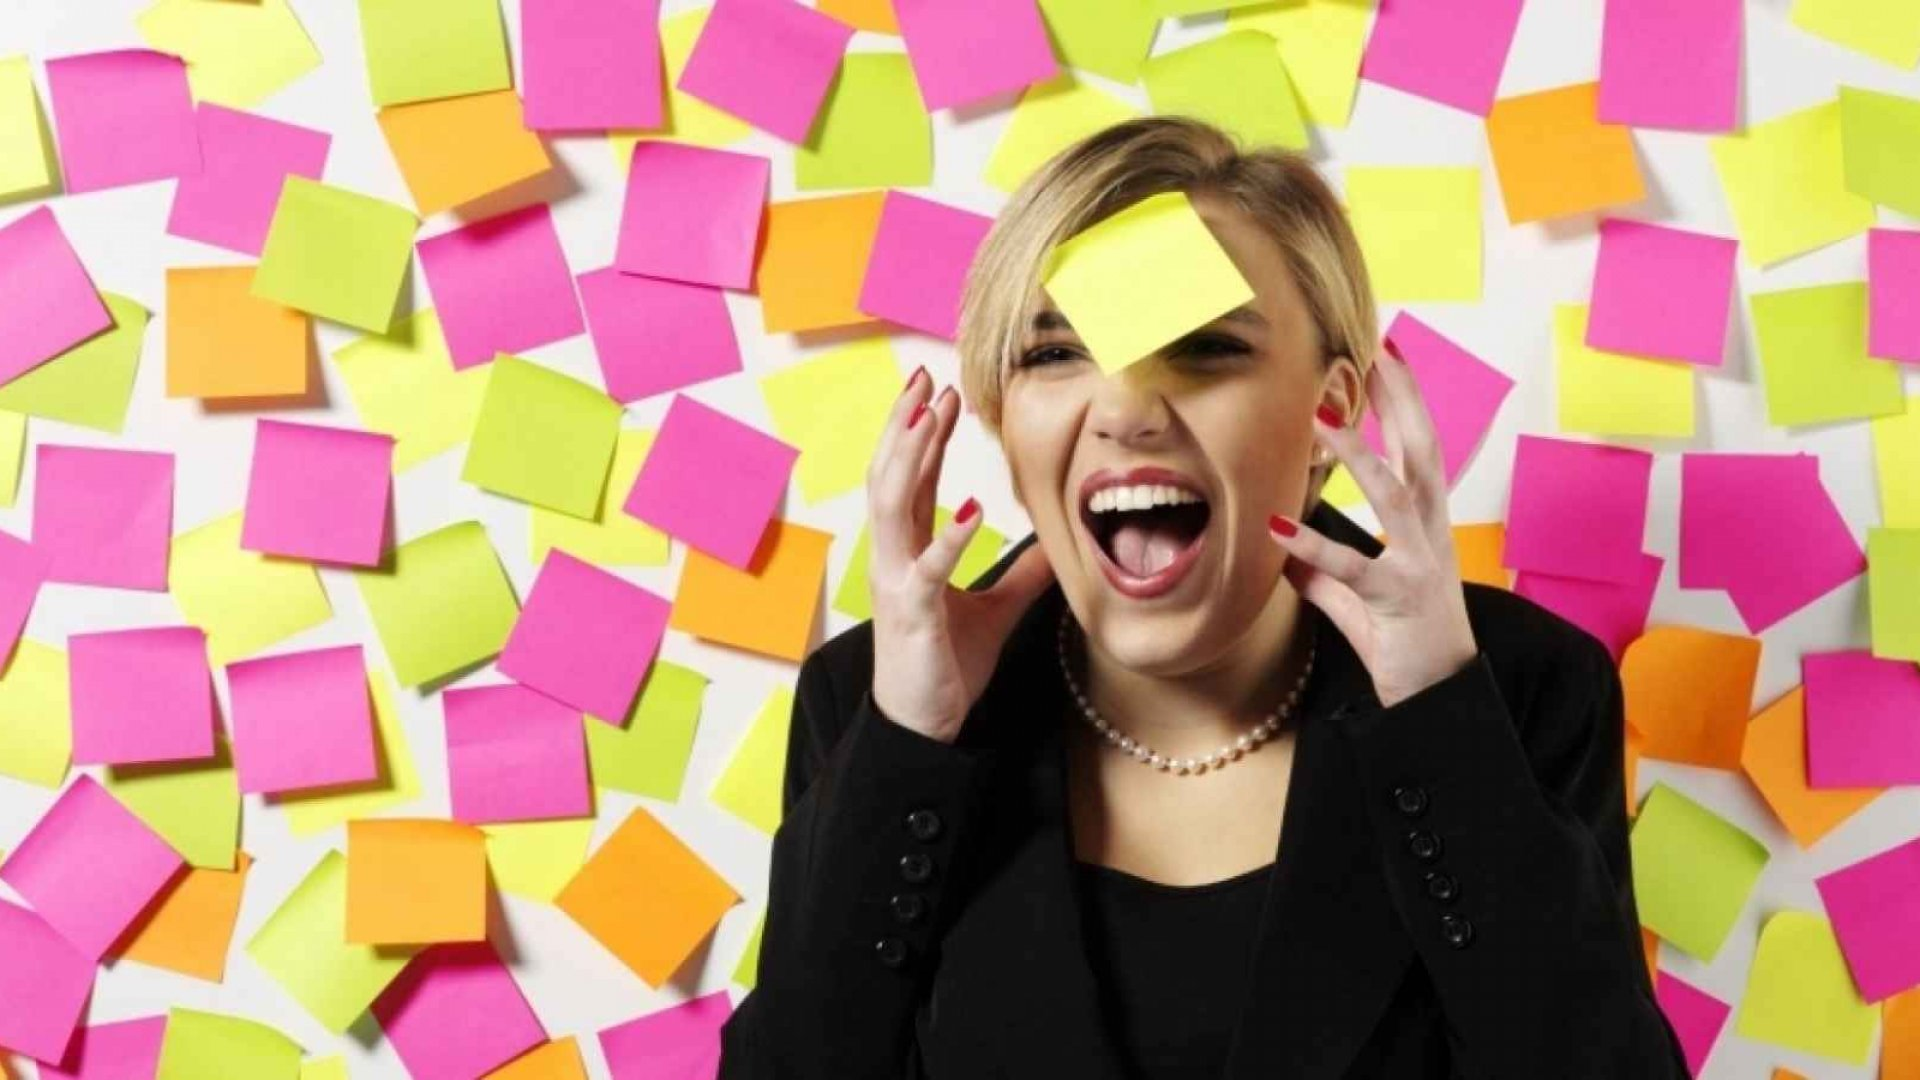 How to Cope With the Insane Stress of a Startup